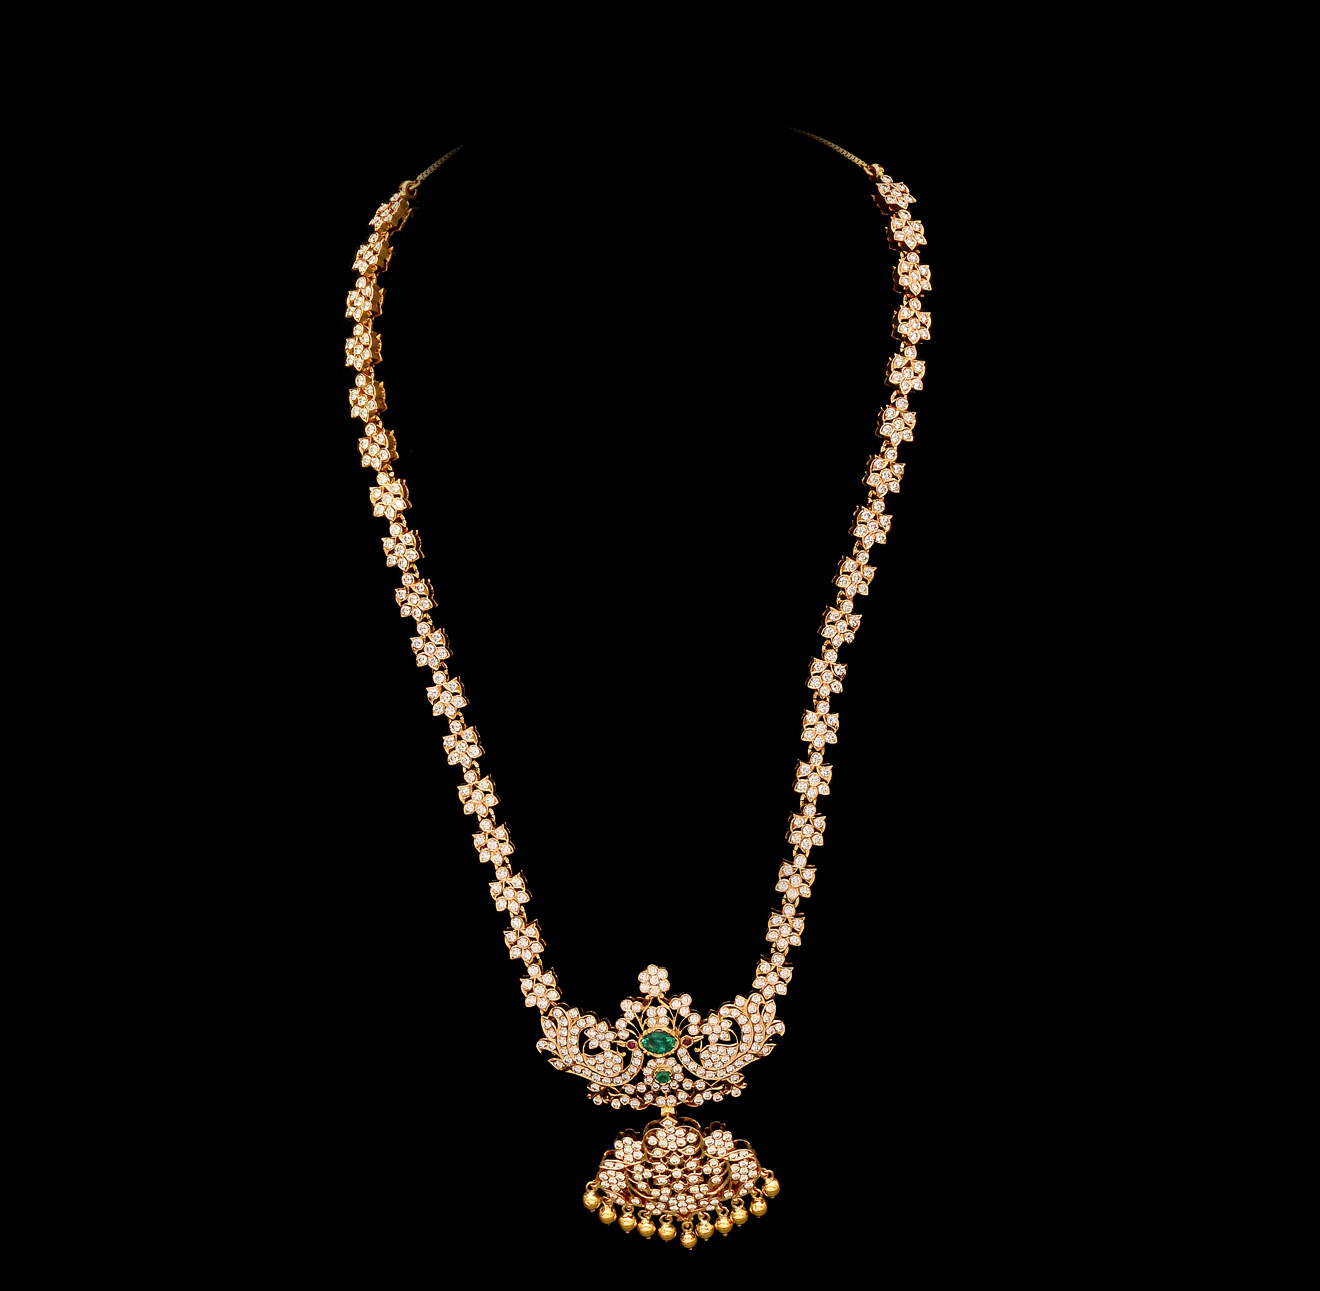 Indian Gold Jewellery From Websites For